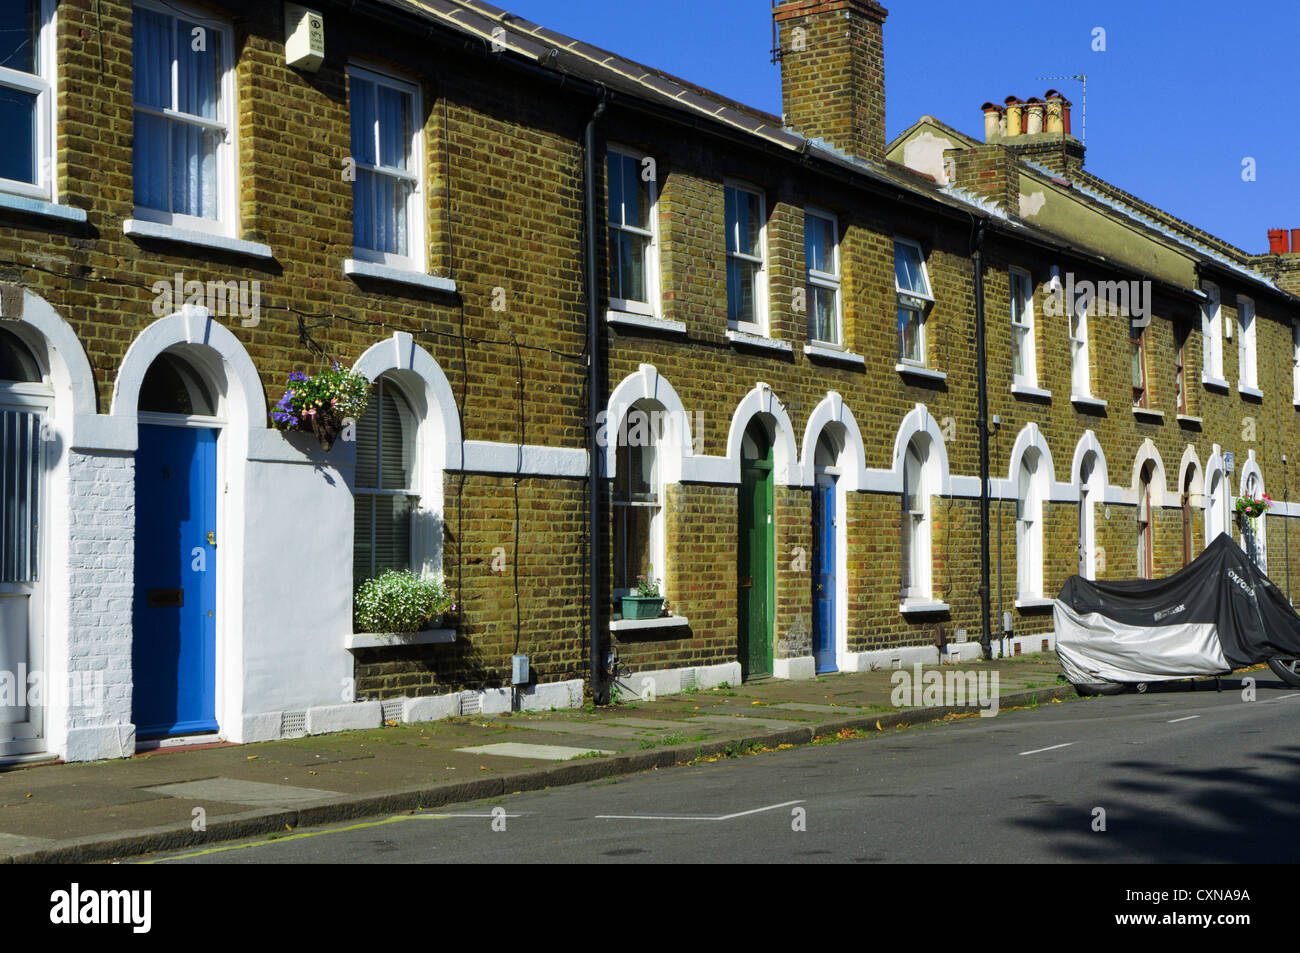 A suburban street of small nineteenth century terraced houses in Bromley, South London. - Stock Image